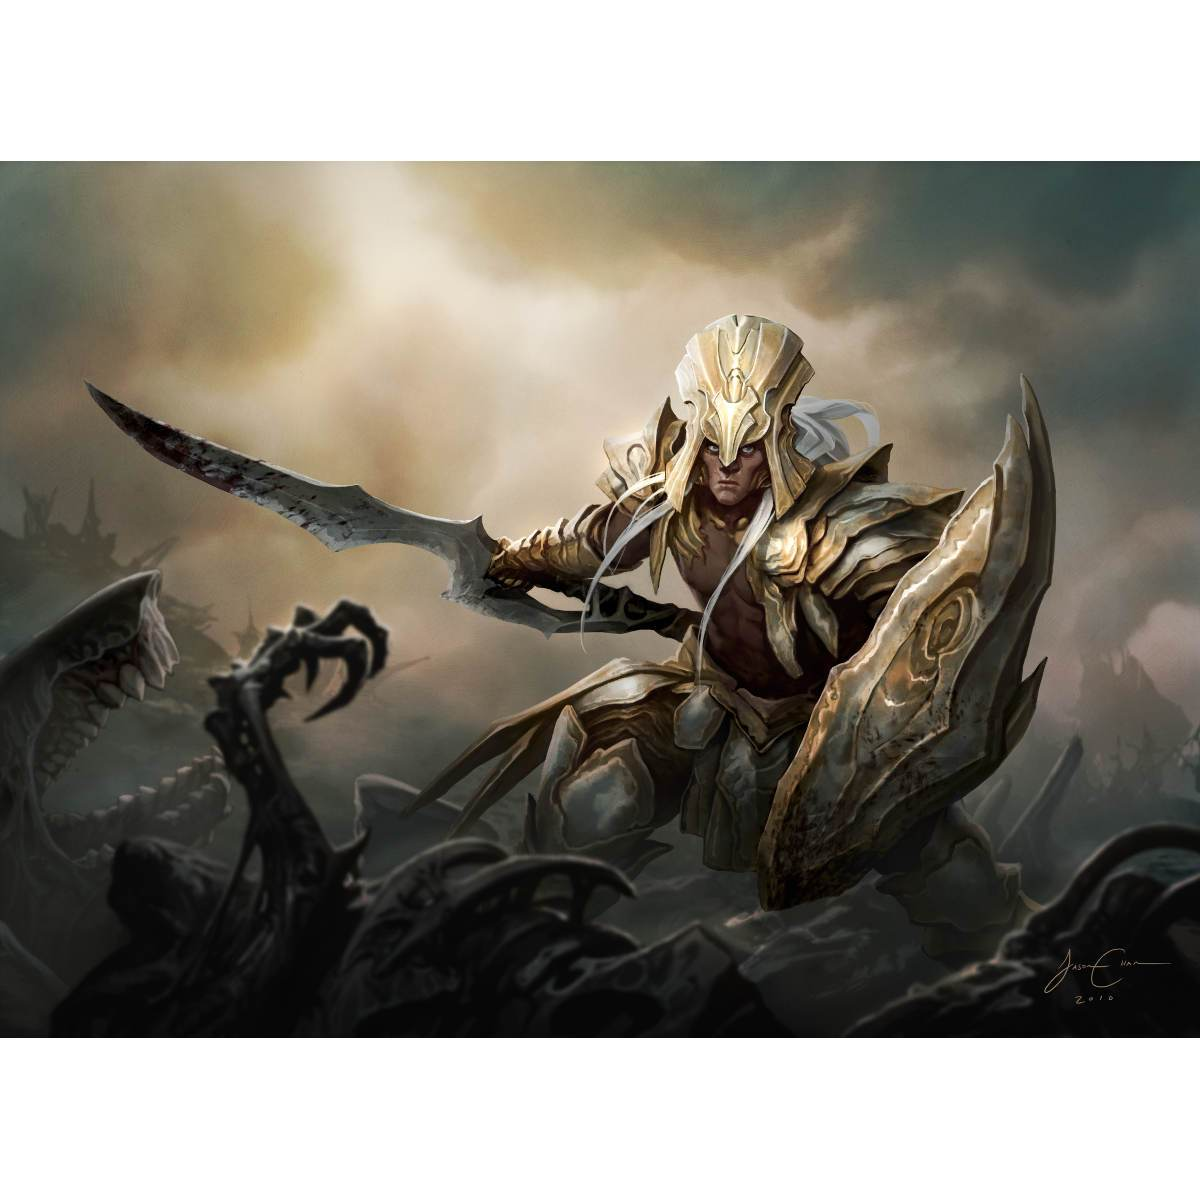 Puresteel Paladin Print - Print - Original Magic Art - Accessories for Magic the Gathering and other card games